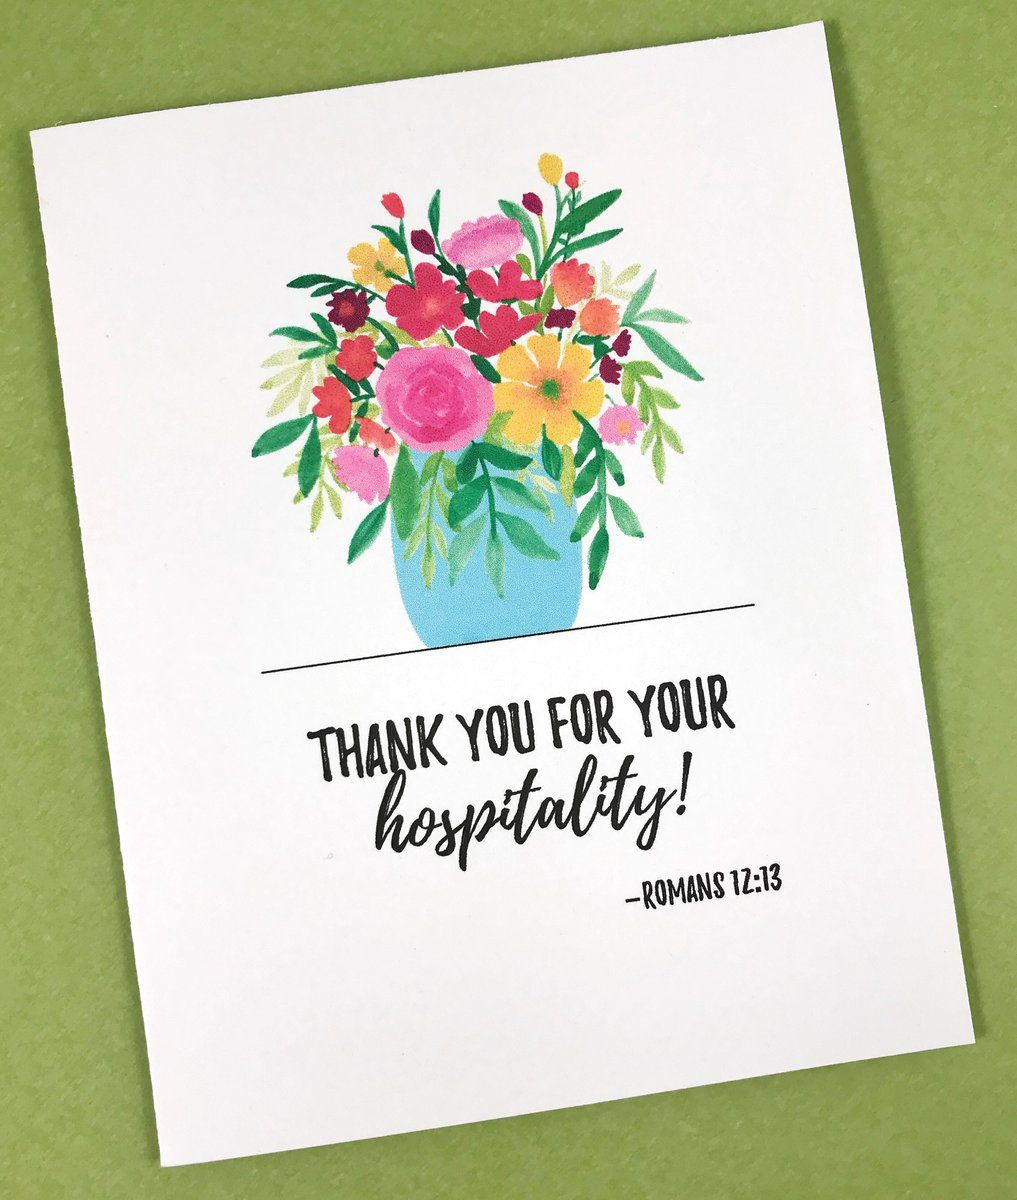 Hospitality Thank You Card  Thank you cards, Your cards, Hand